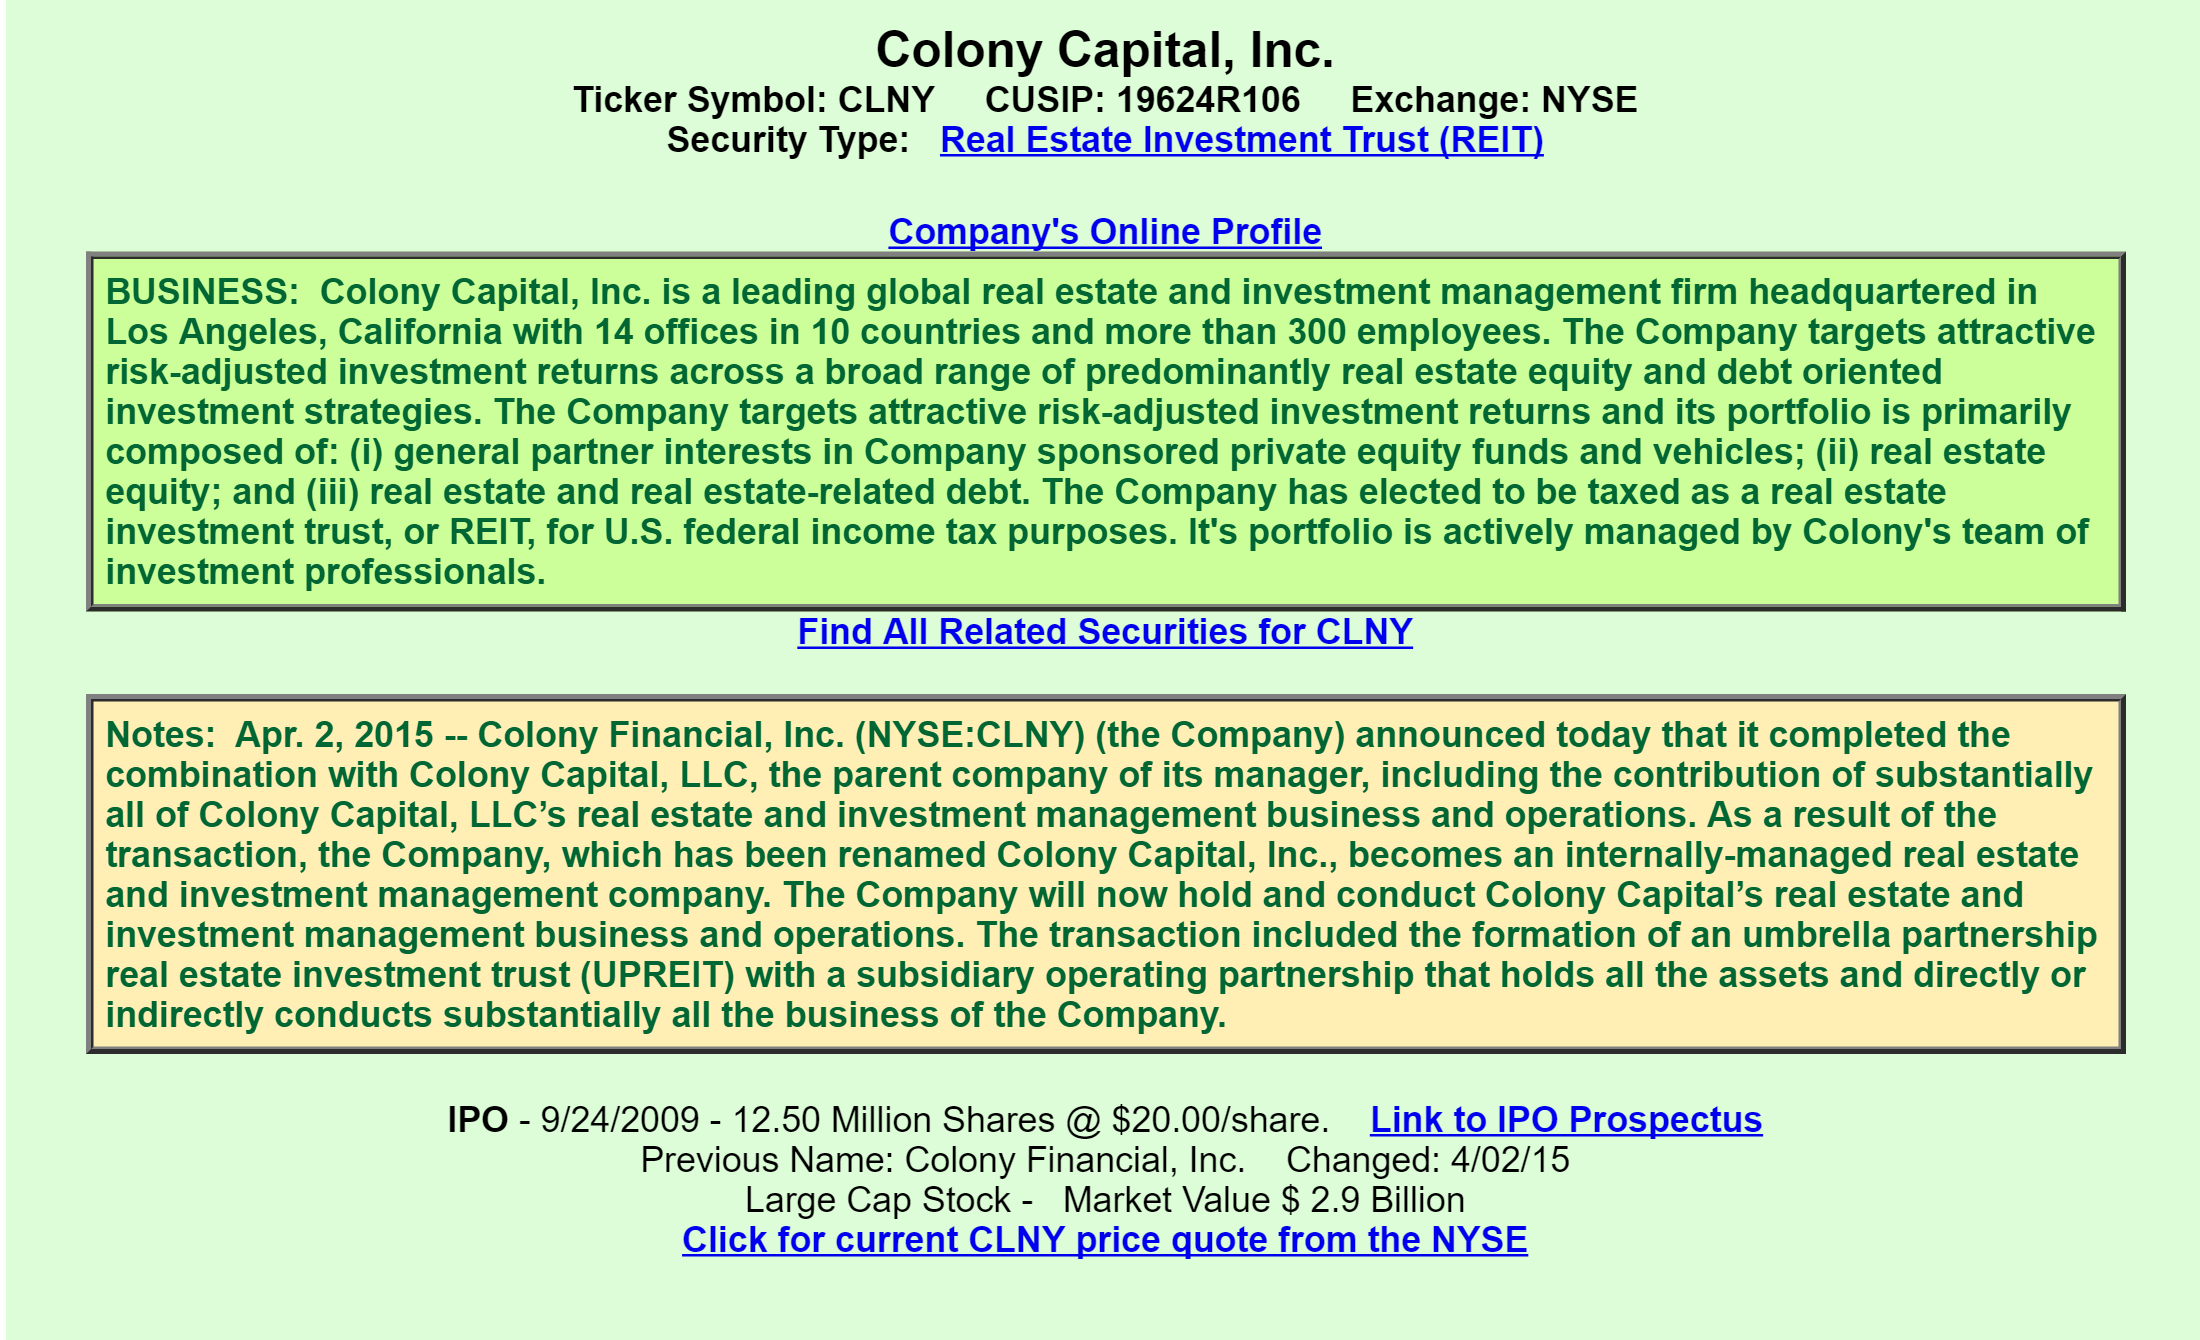 Colony Capital: A View From The Perspective Of A Preferred Investor